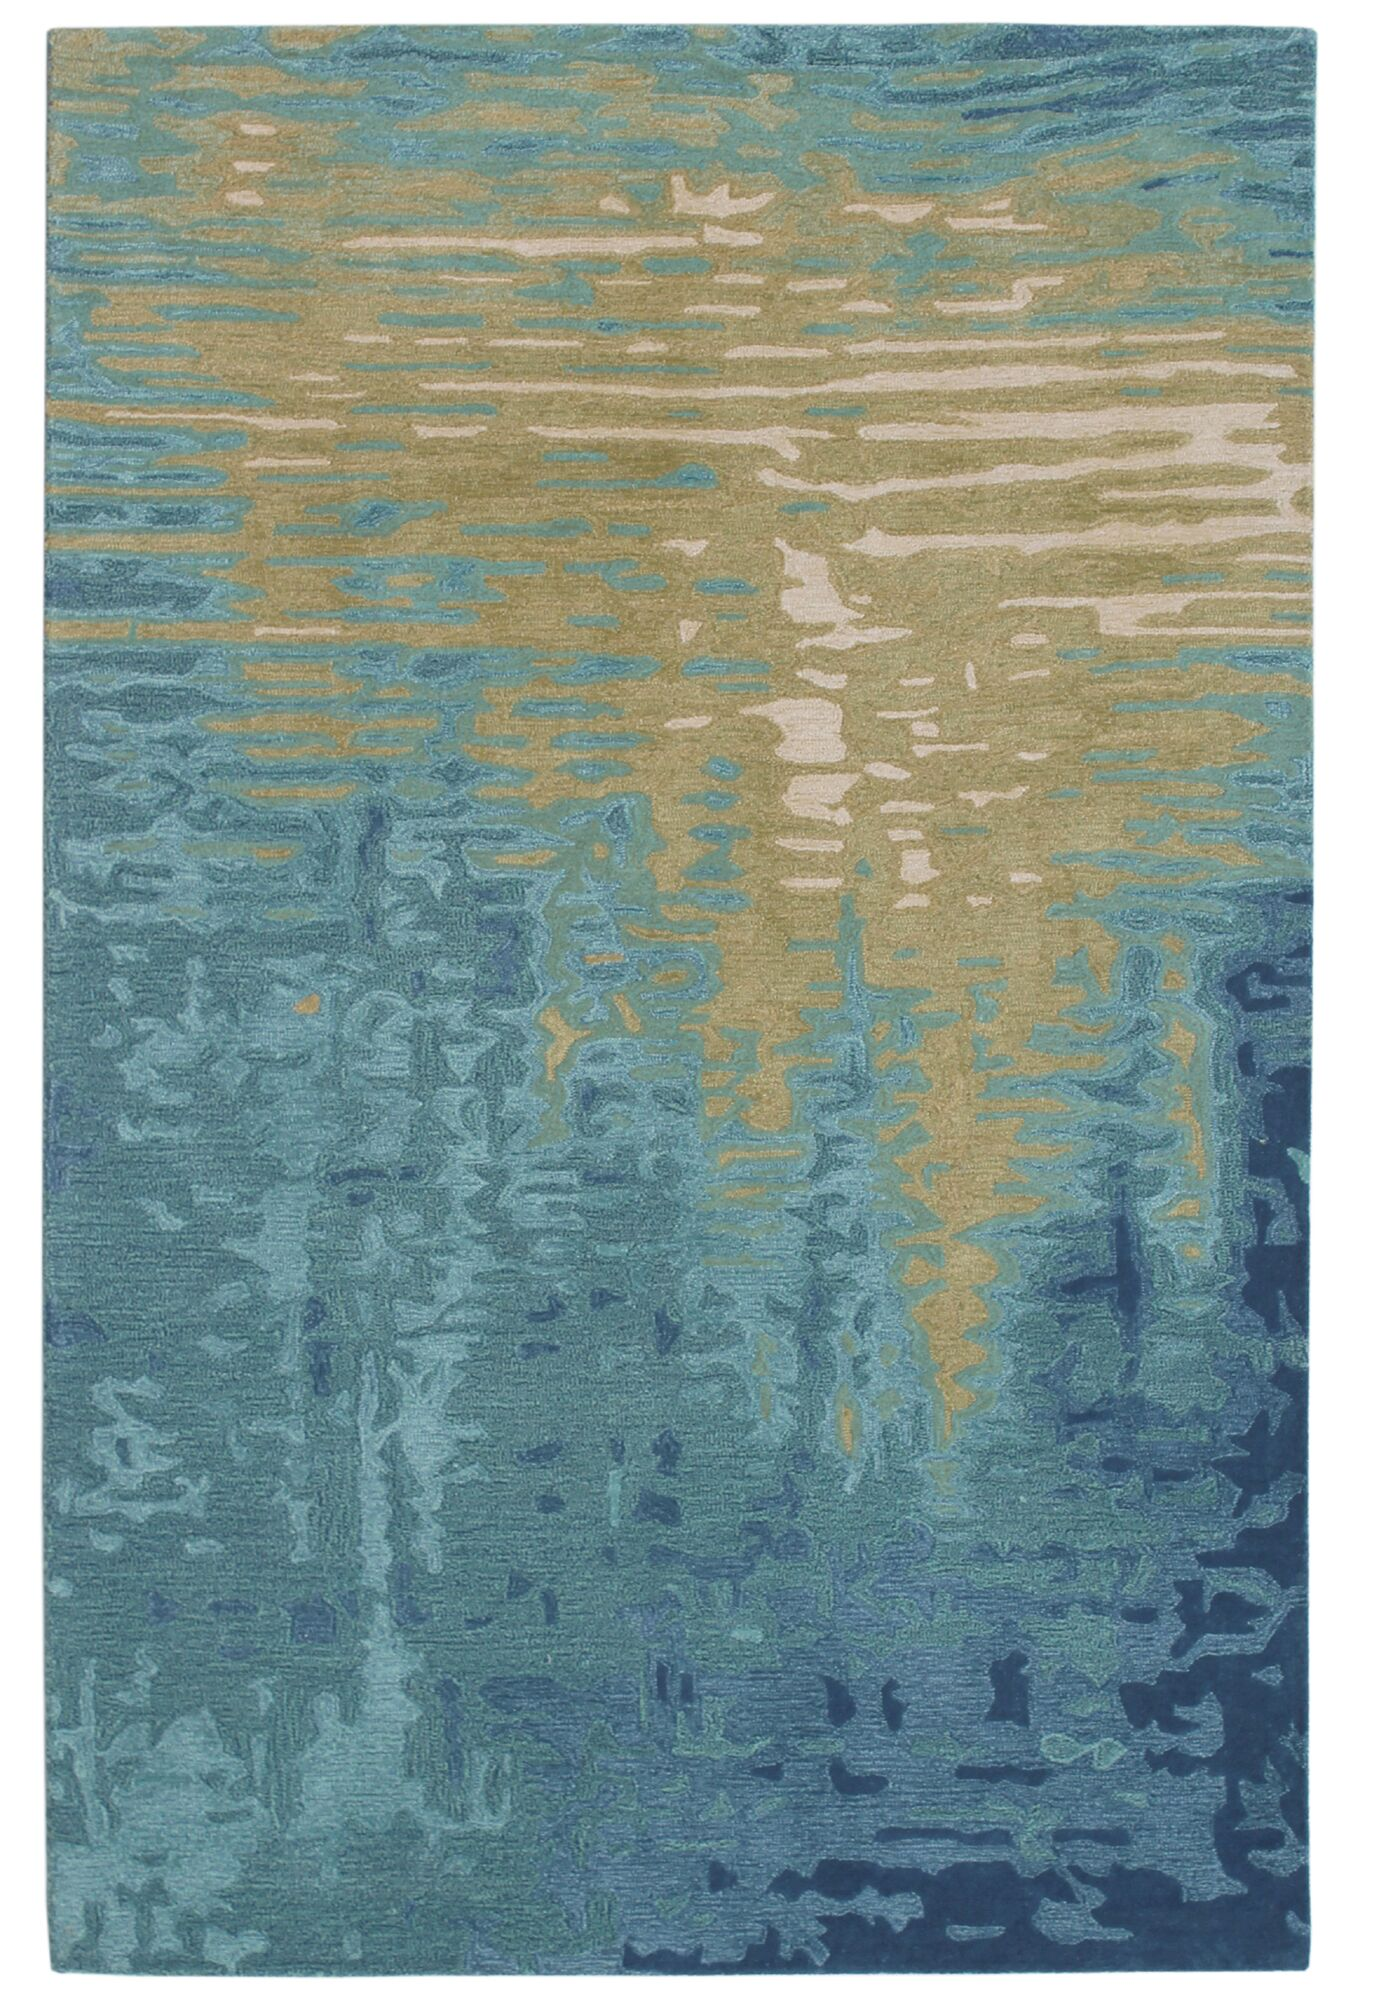 Groce Reflection Hand-Woven Wool Blue/Beige Area Rug Rug Size: Rectangle 5' X 7'5